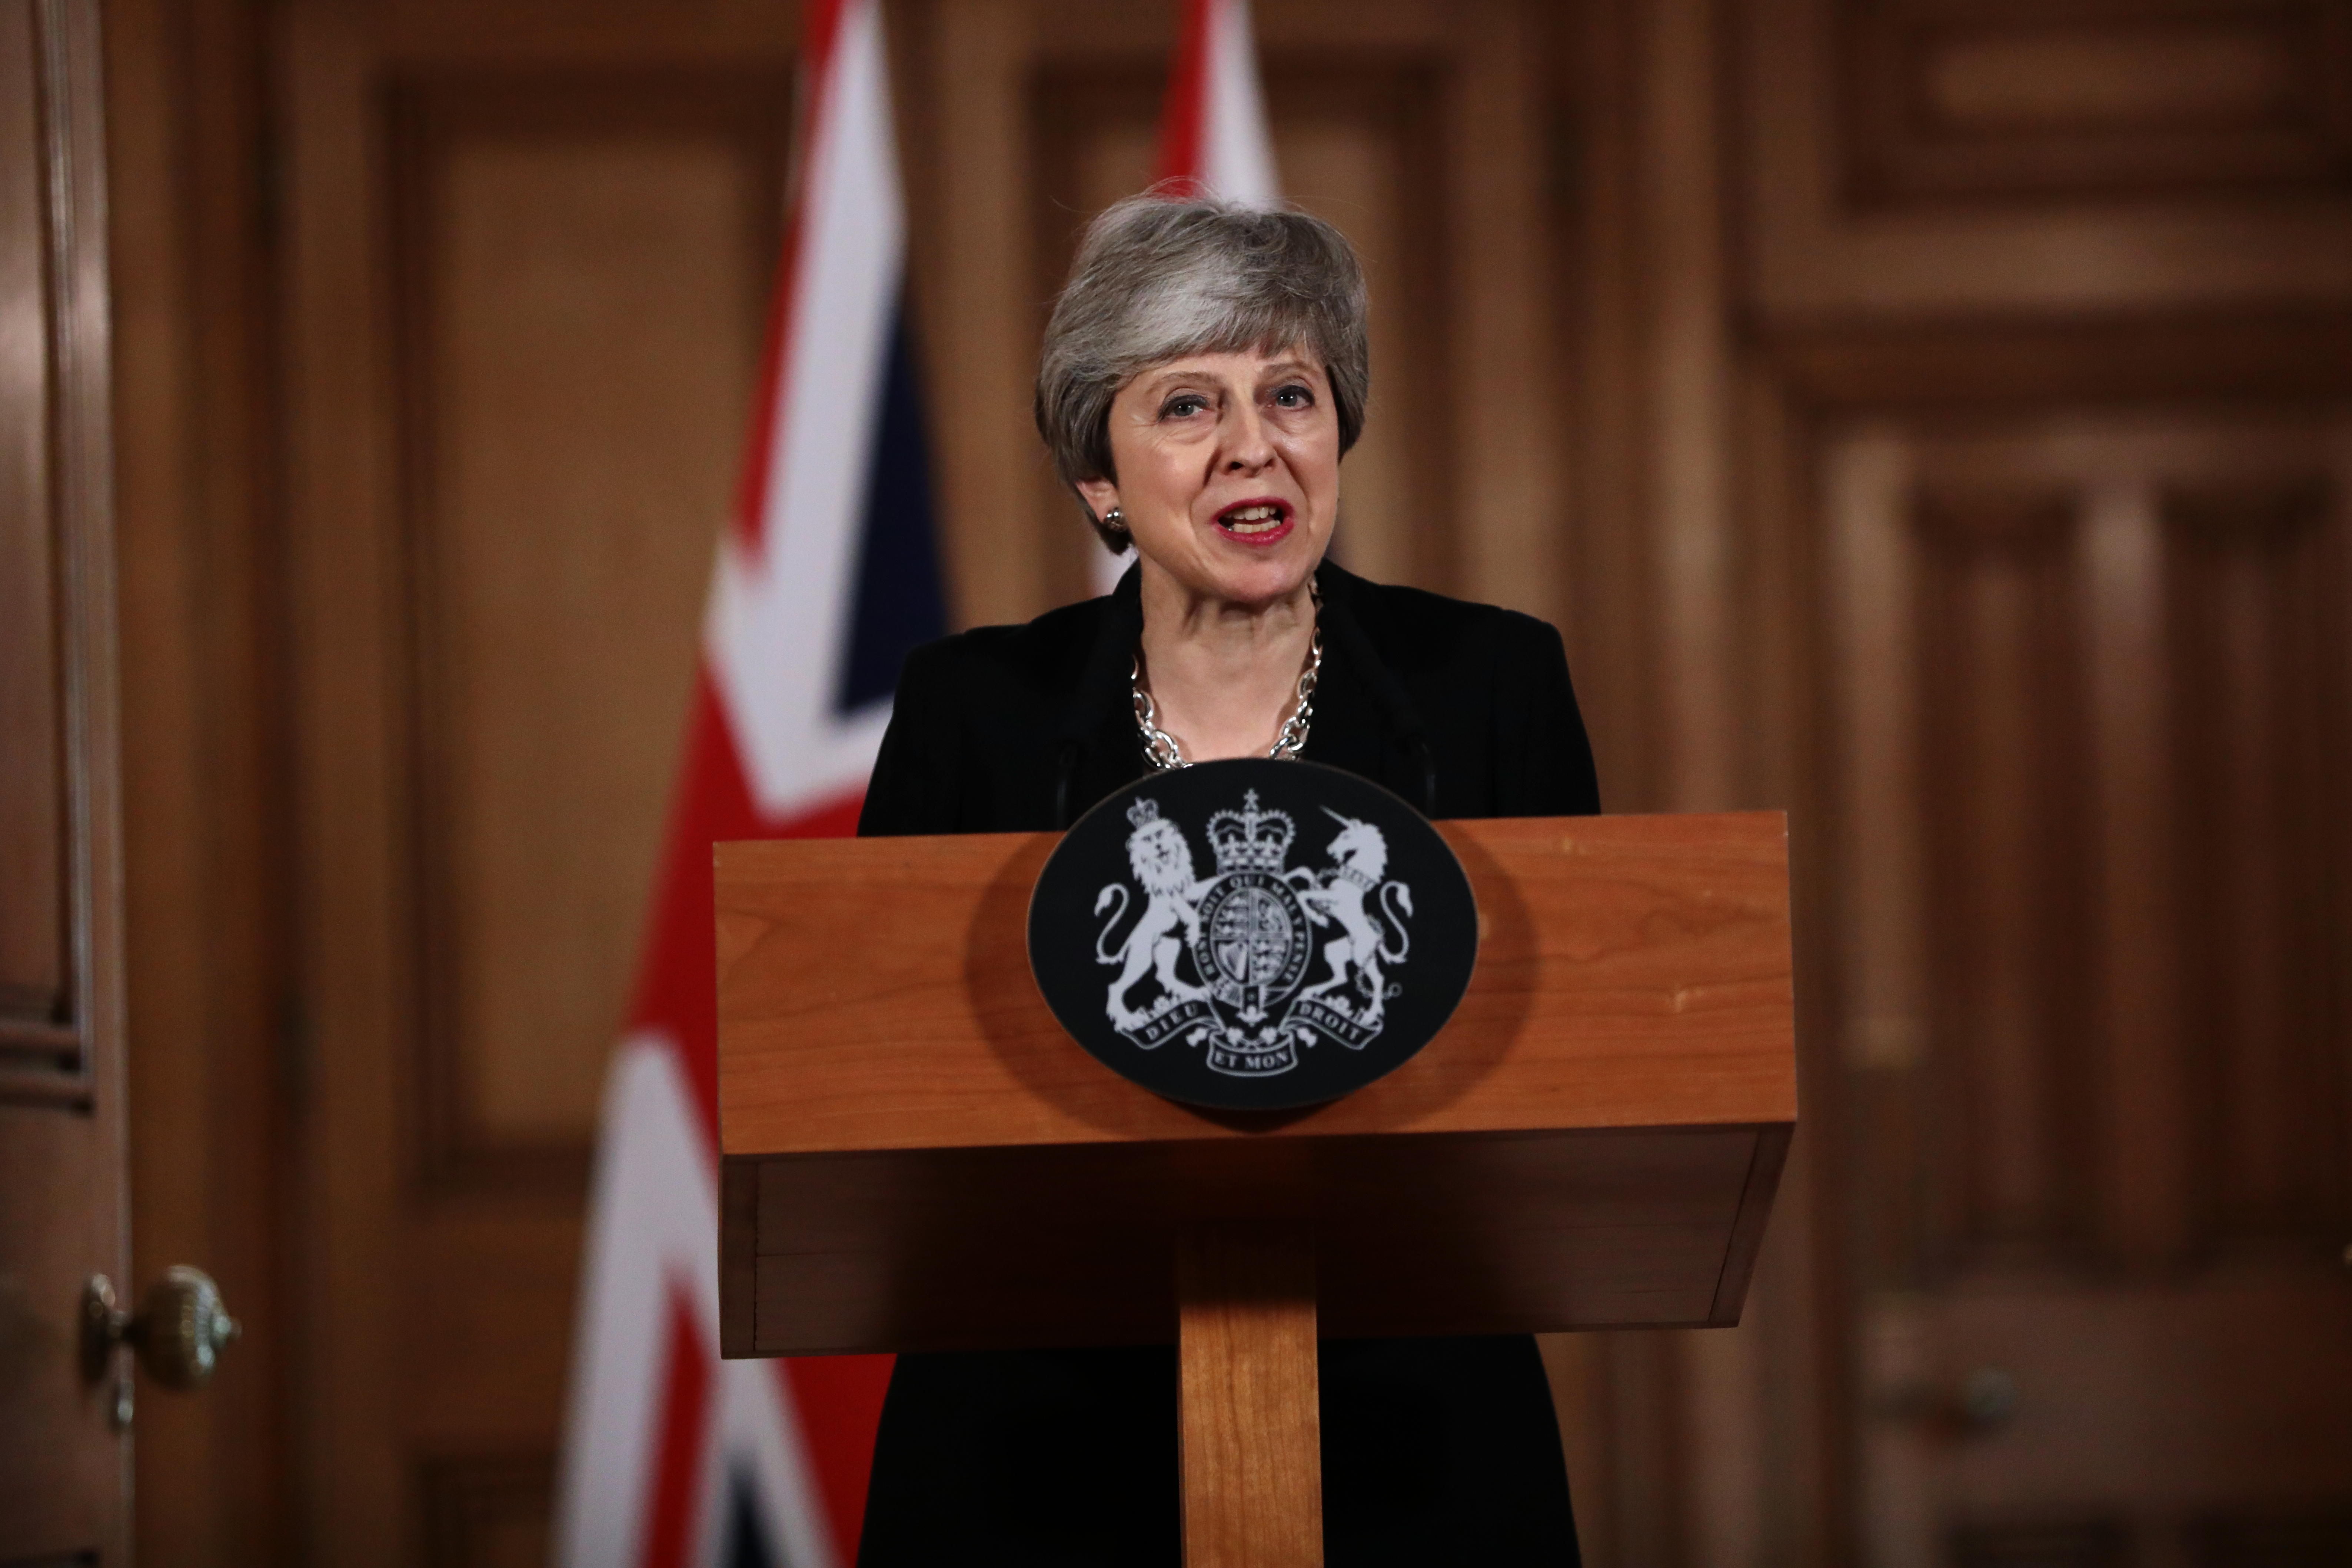 Brexit deadlock: UK prime minister Theresa May gives a press conference addresses the nation from Downing Street on Tuesday (April 2)  (by Jack Taylor/Getty Images)